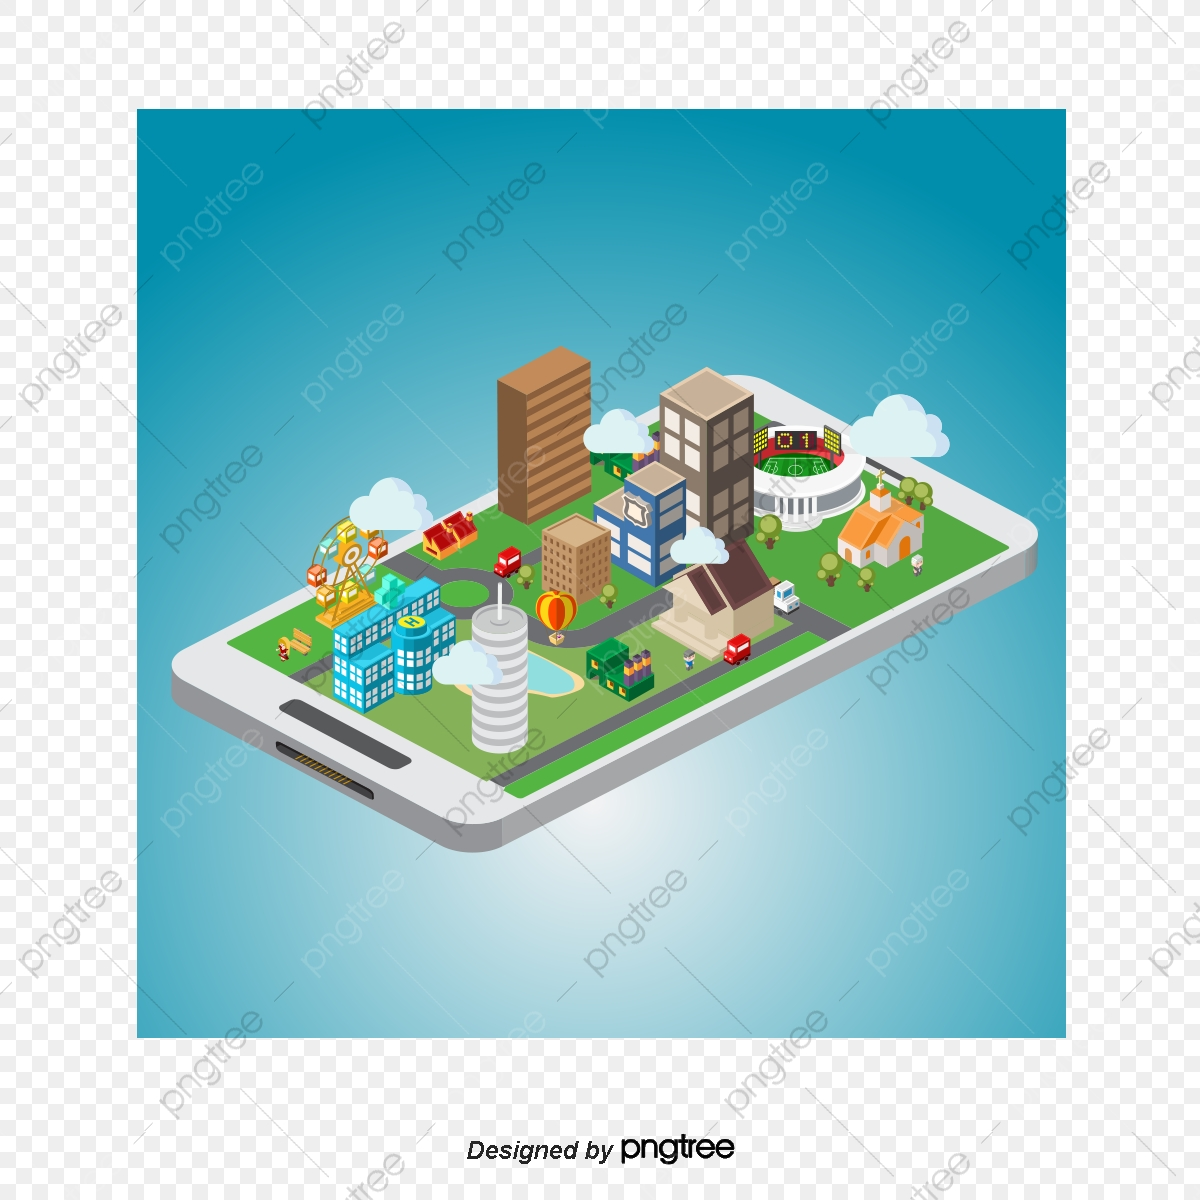 Mobile App City Map, Location Map, Route Query, Map App PNG and